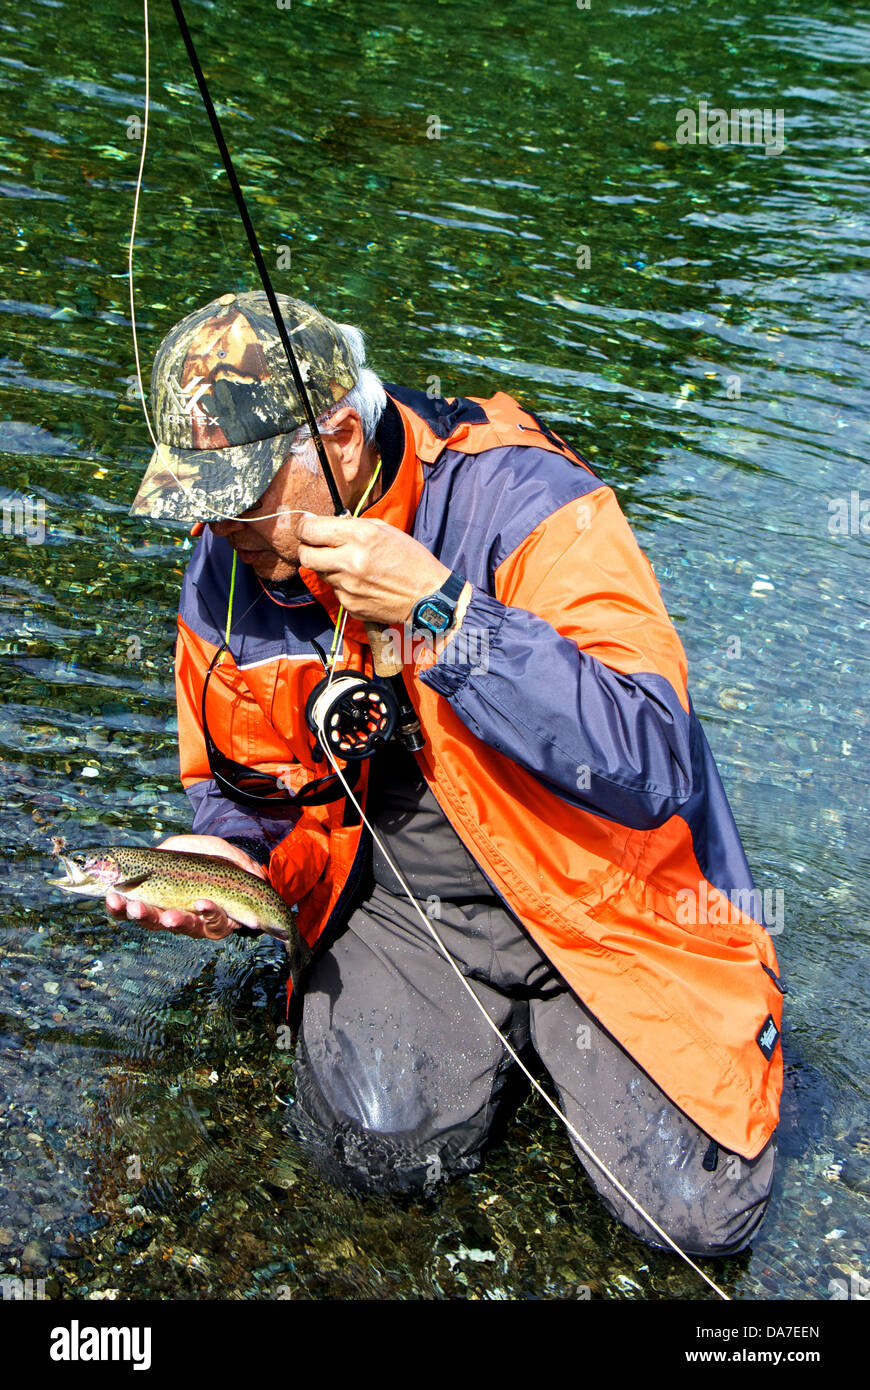 Elk River Vancouver Island Fly Fishing